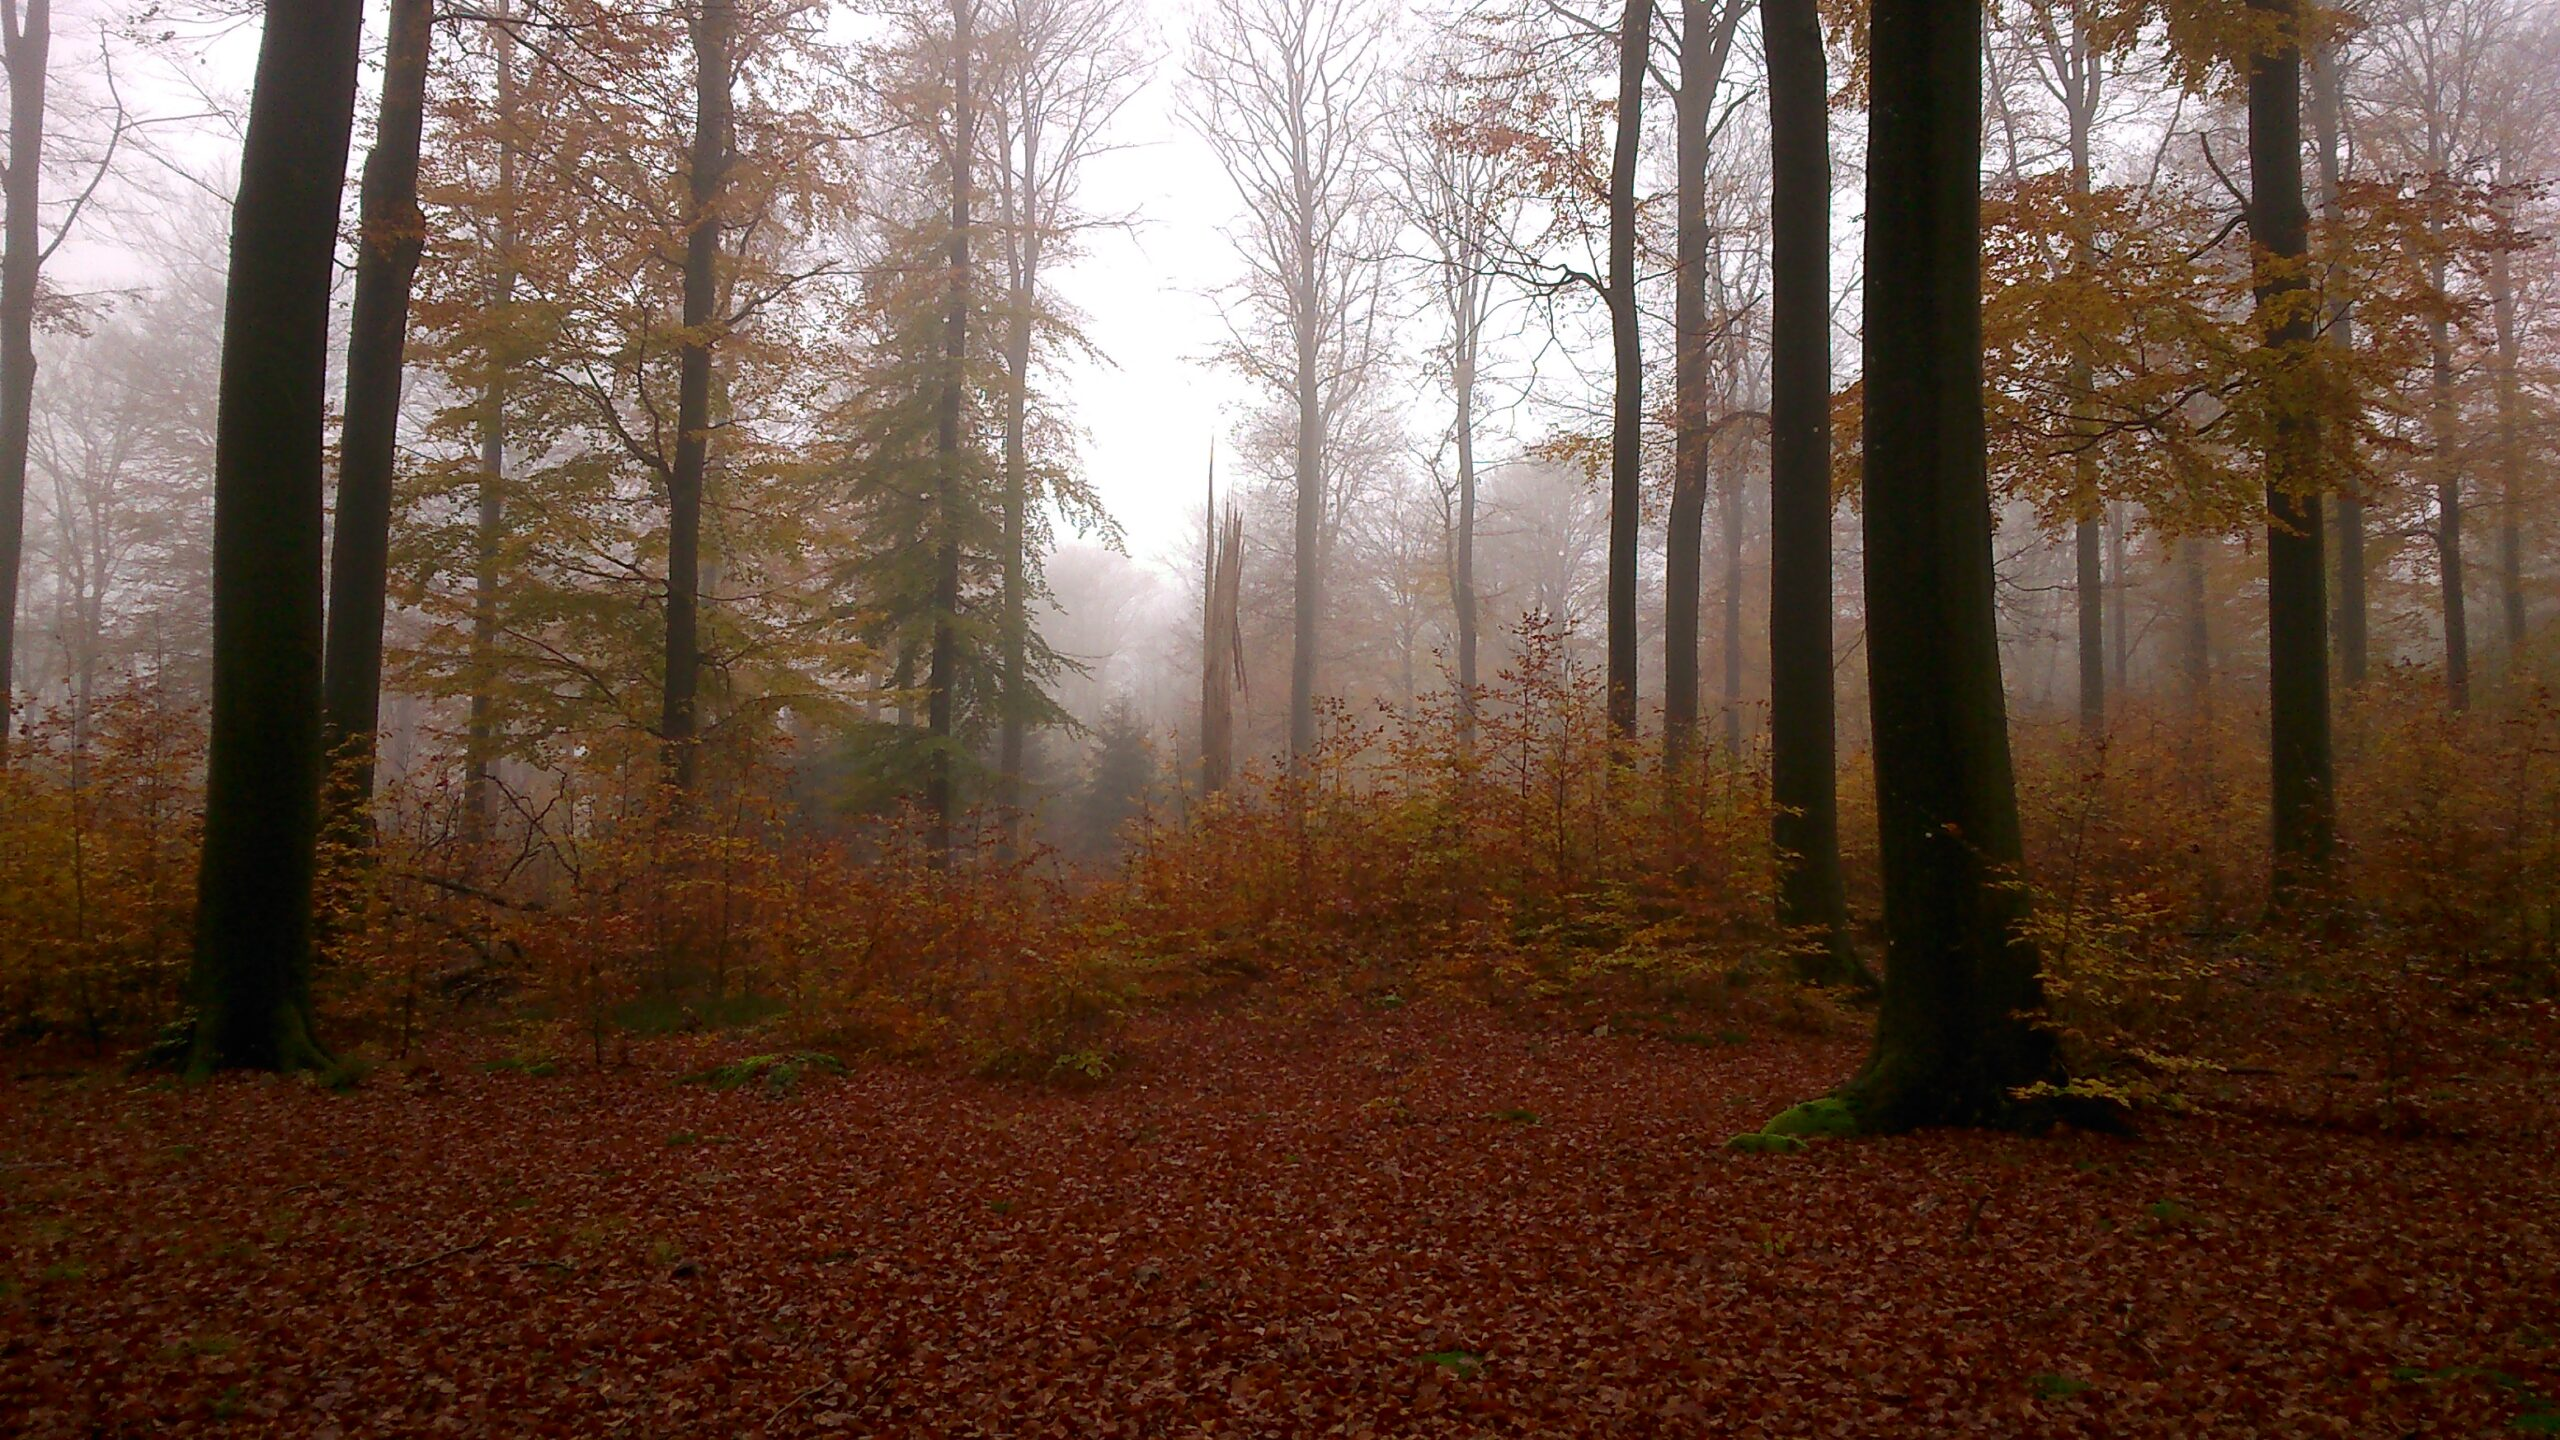 One of the beech stands surveyed in the Ardennes